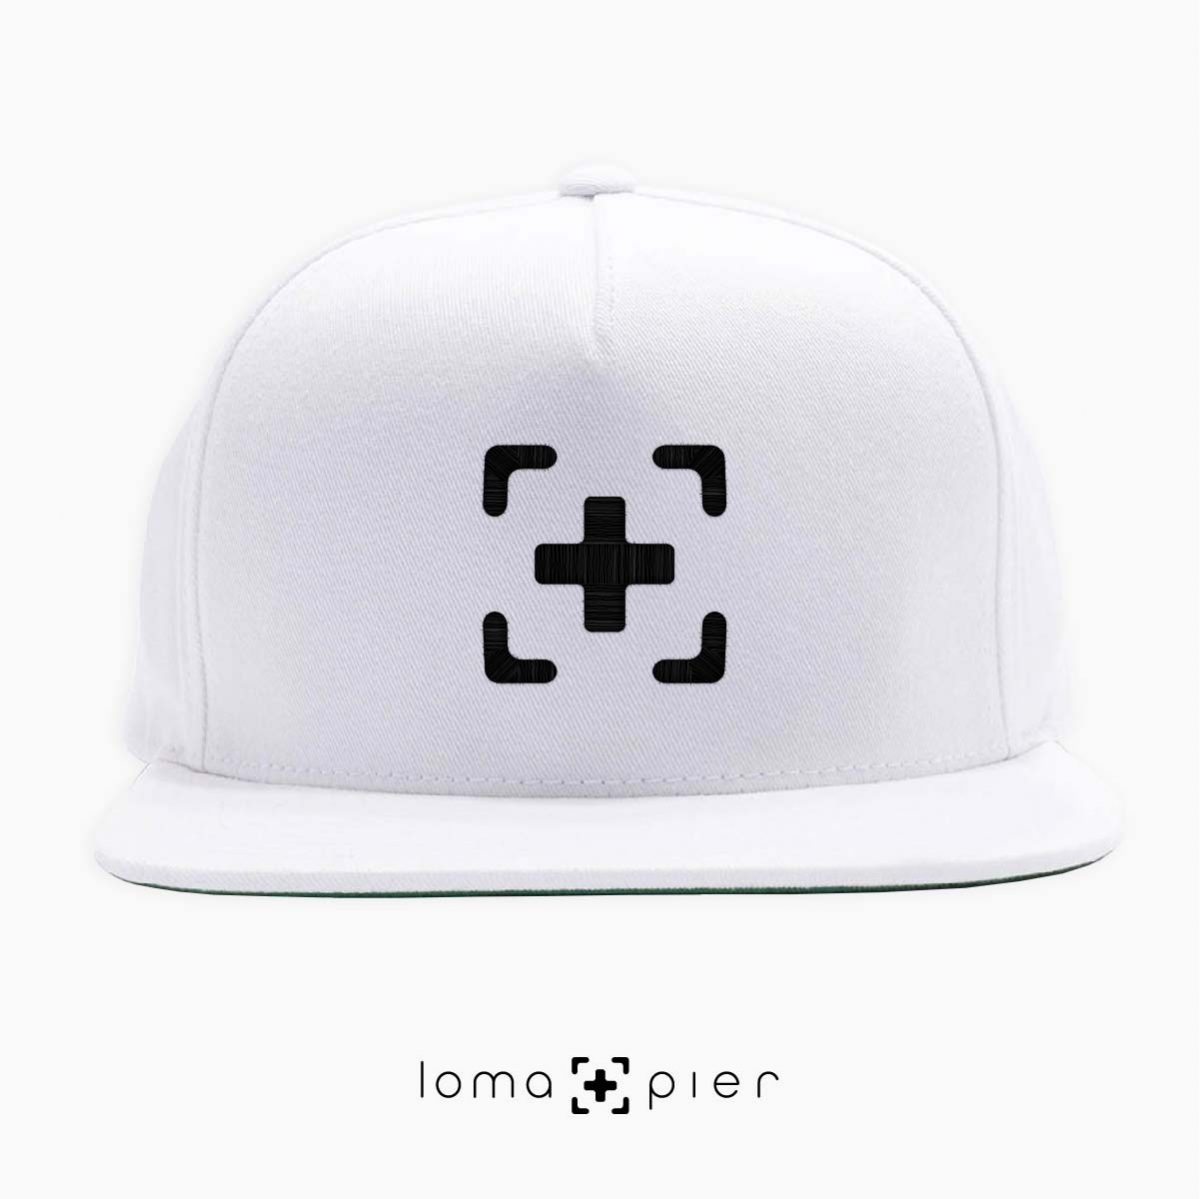 classic snapback cap in white by loma+pier hat shop